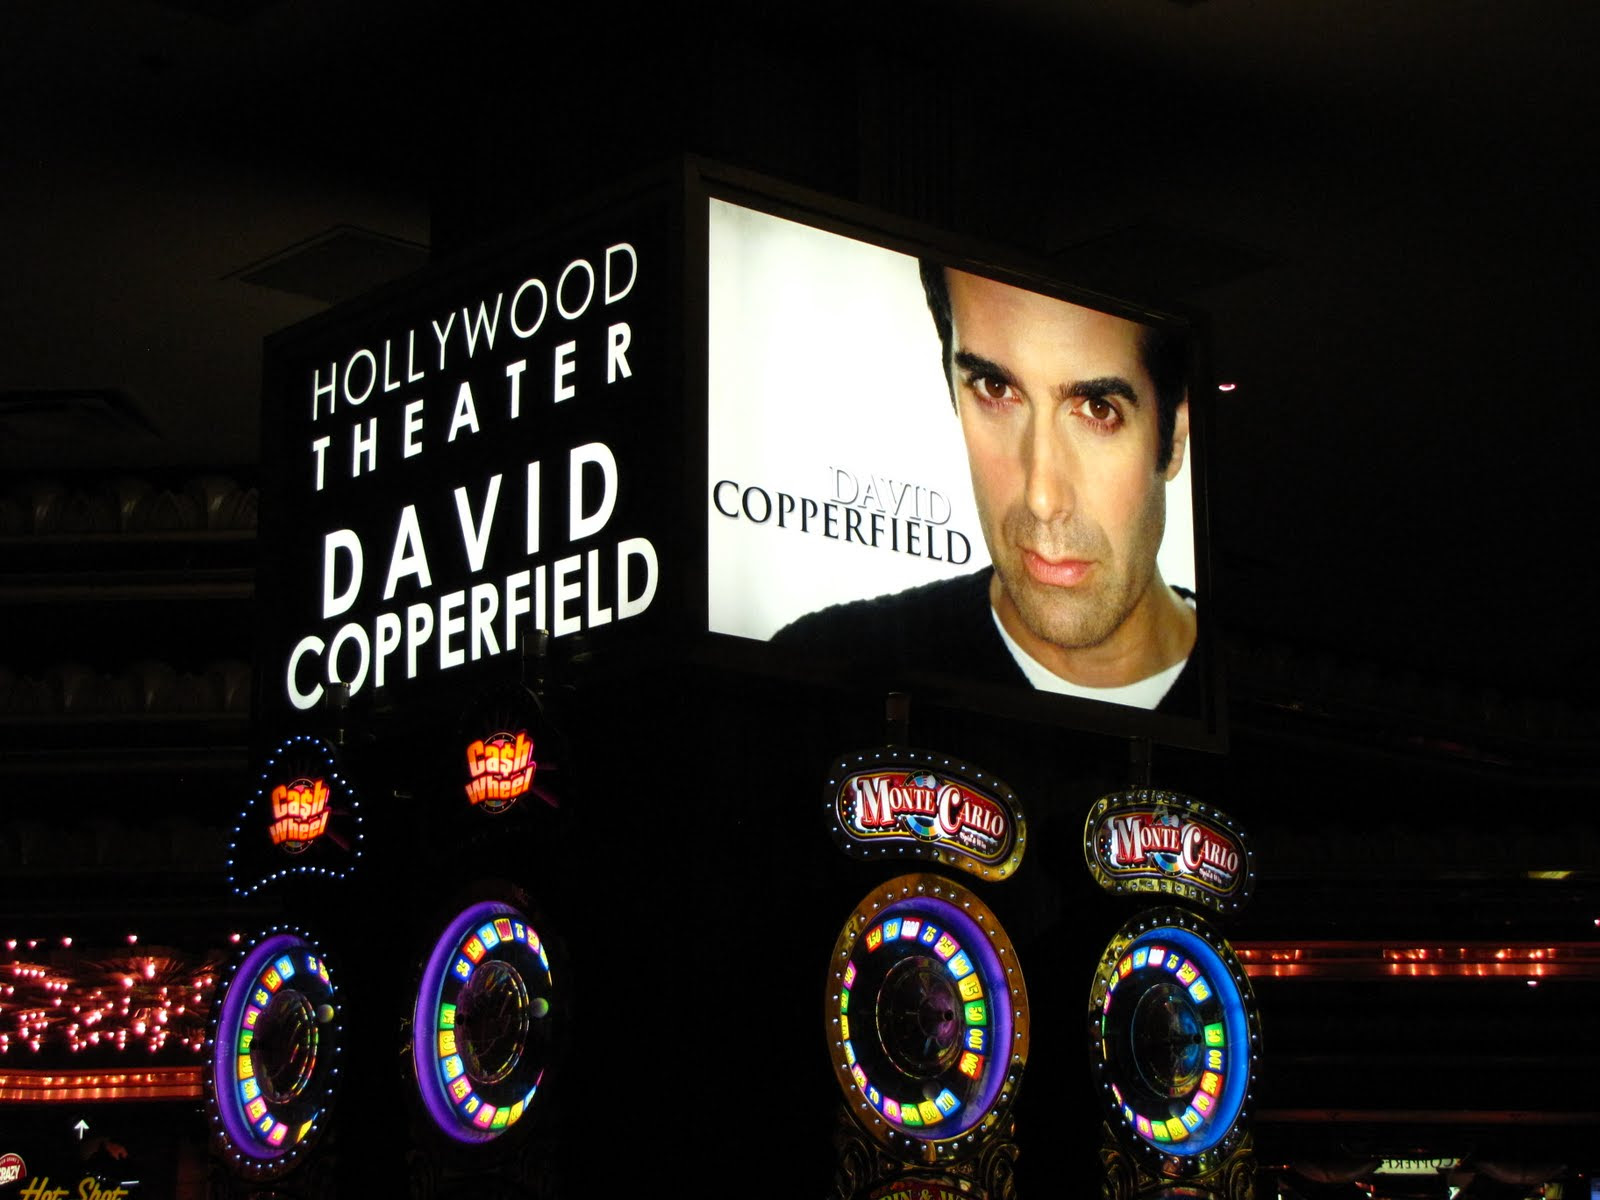 http://www.topshowslasvegas.com/wp-content/uploads/2011/08/David-Copperfield.jpg